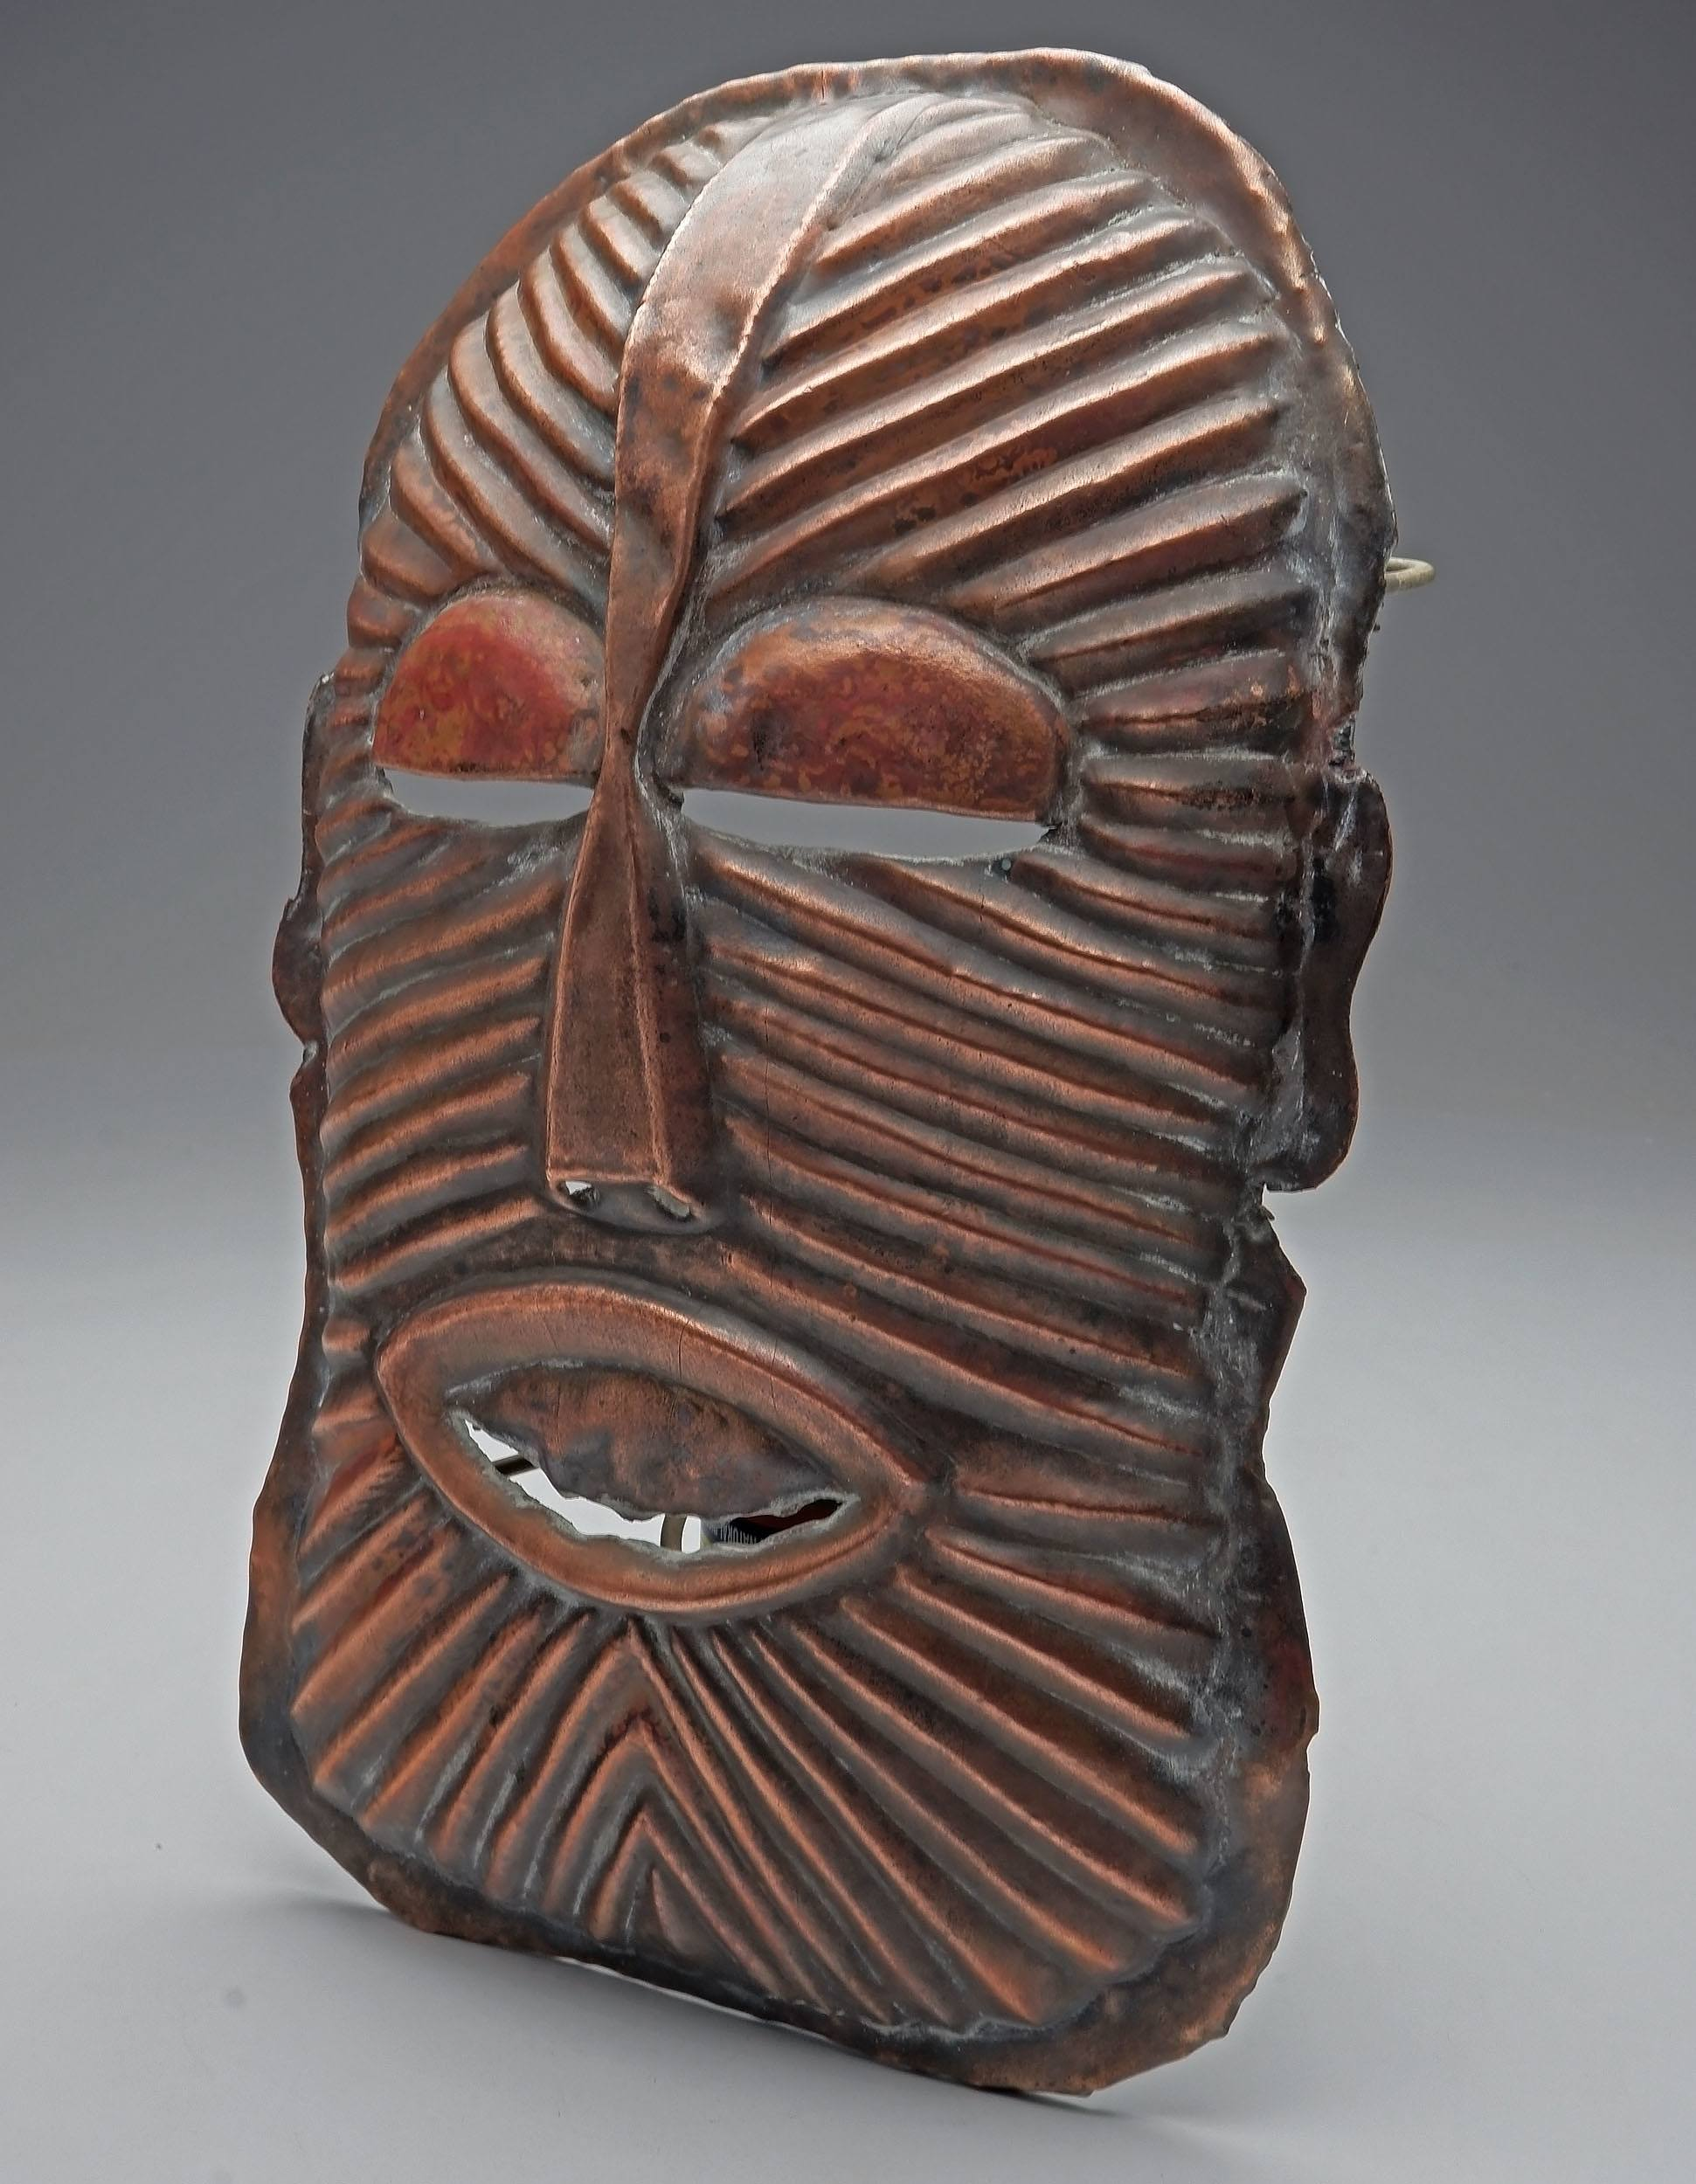 'Copper Mask, Chokwe Tribe, Eastern Zambia'